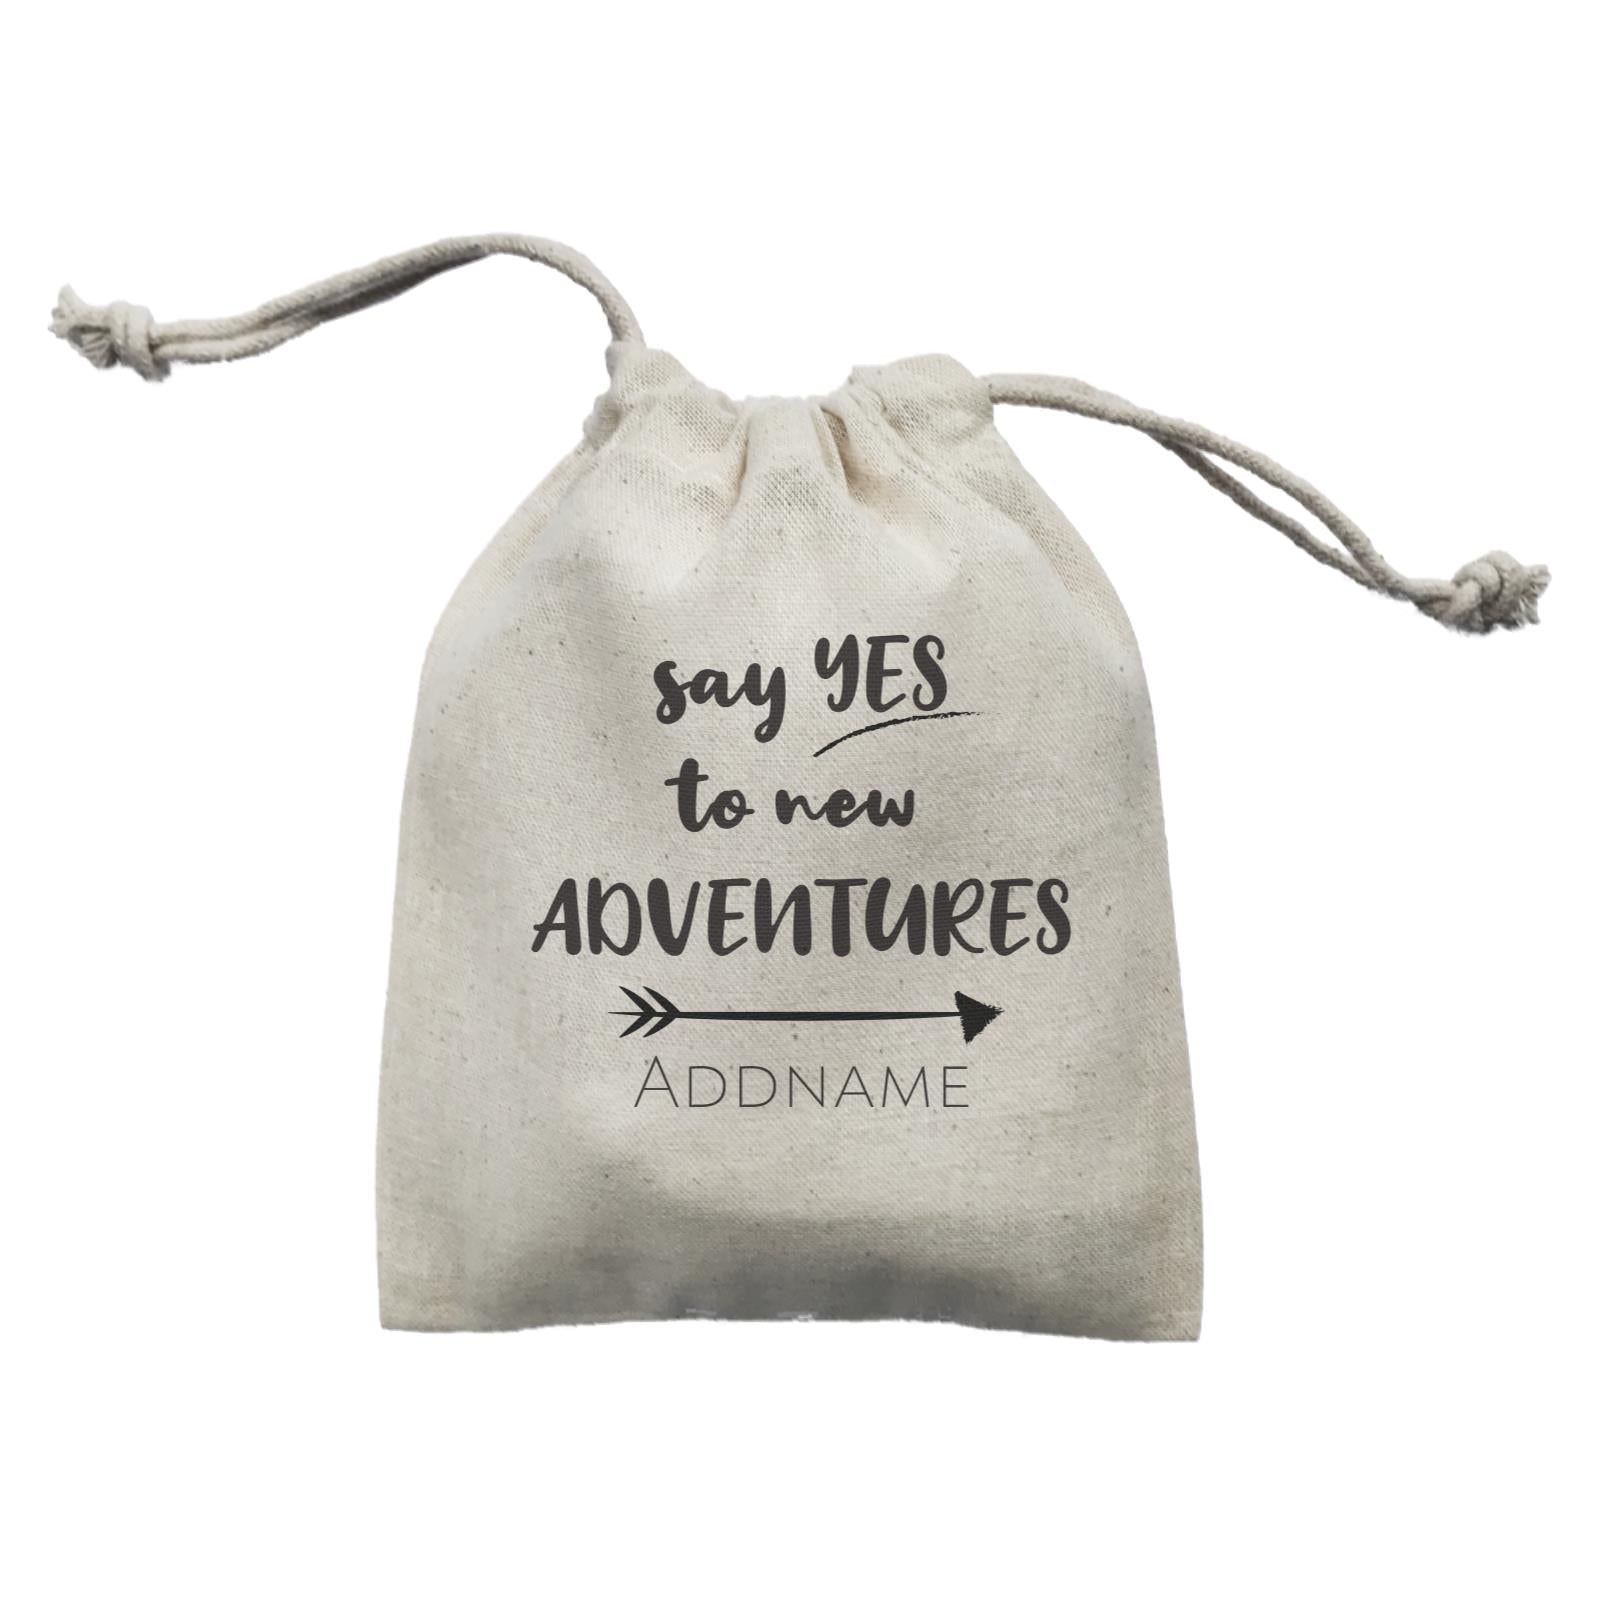 Travel Quotes Say Yes To New Adventures Addname Mini Accessories Mini Pouch